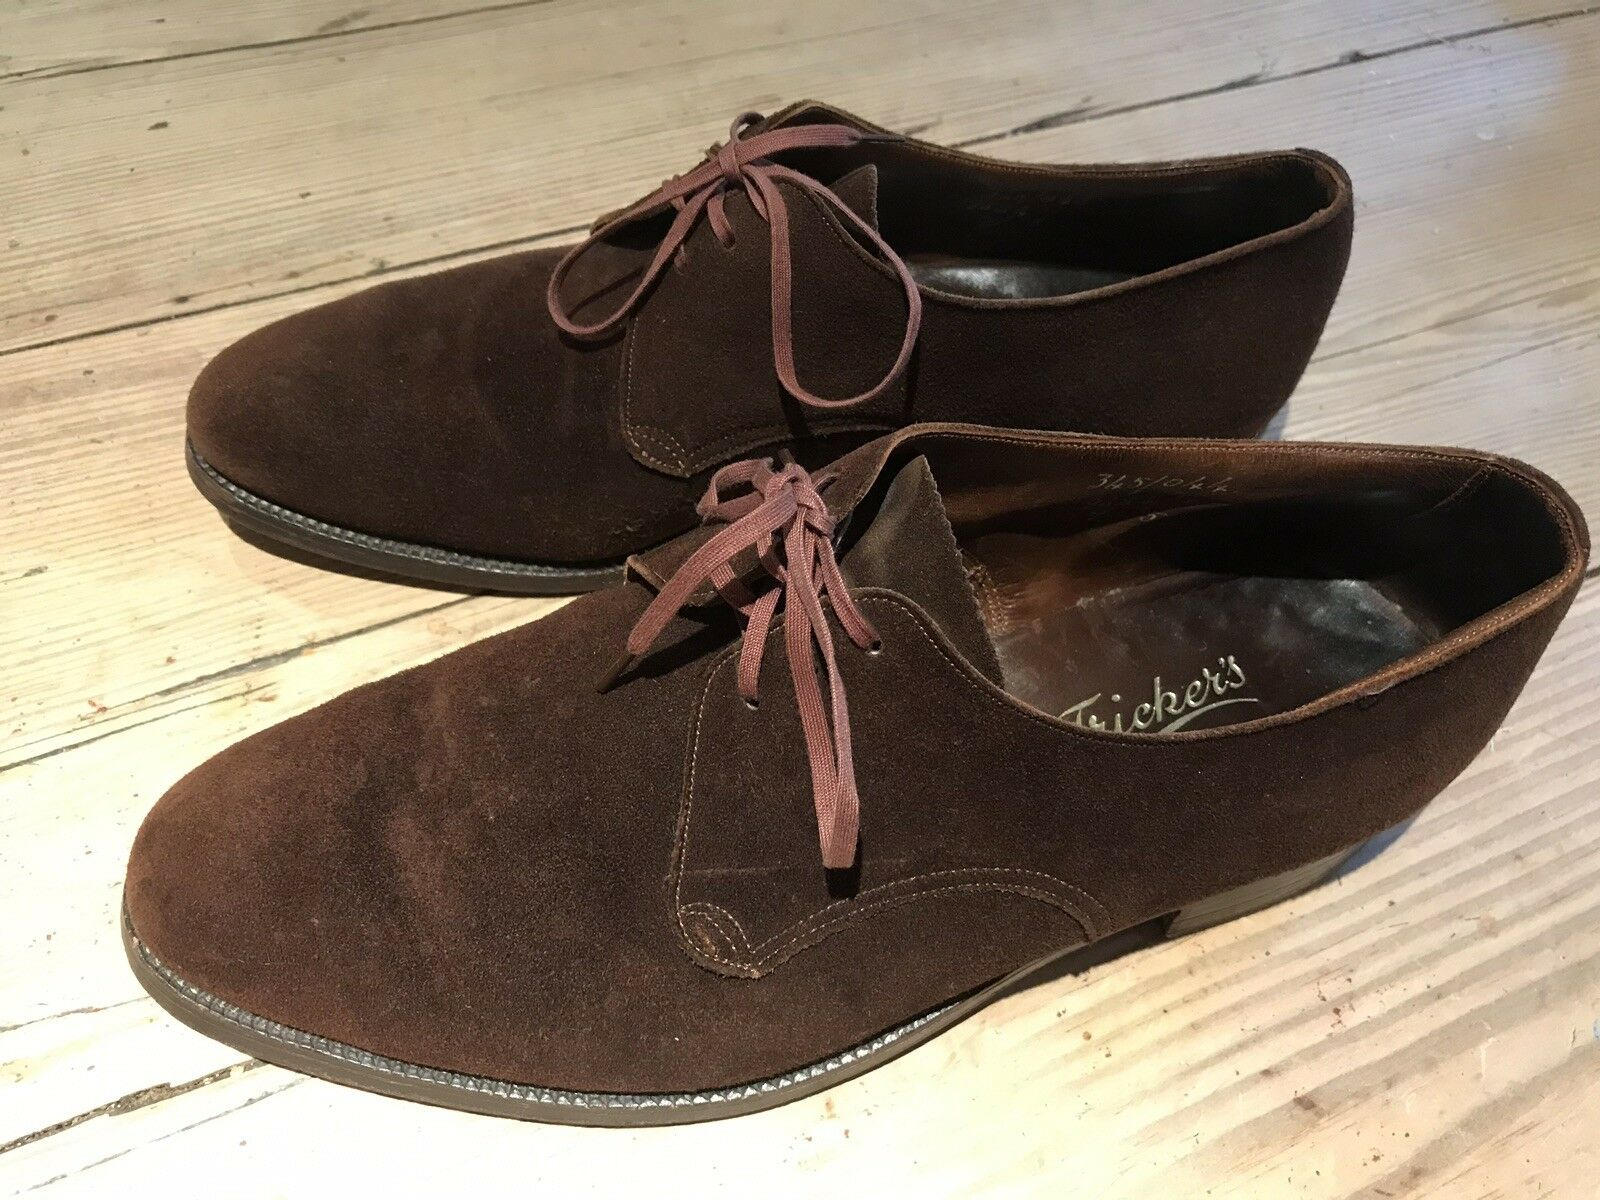 Vintage Tricker's Bench Made Lace Up Brown Suede shoes UK 7, EU 41 Good